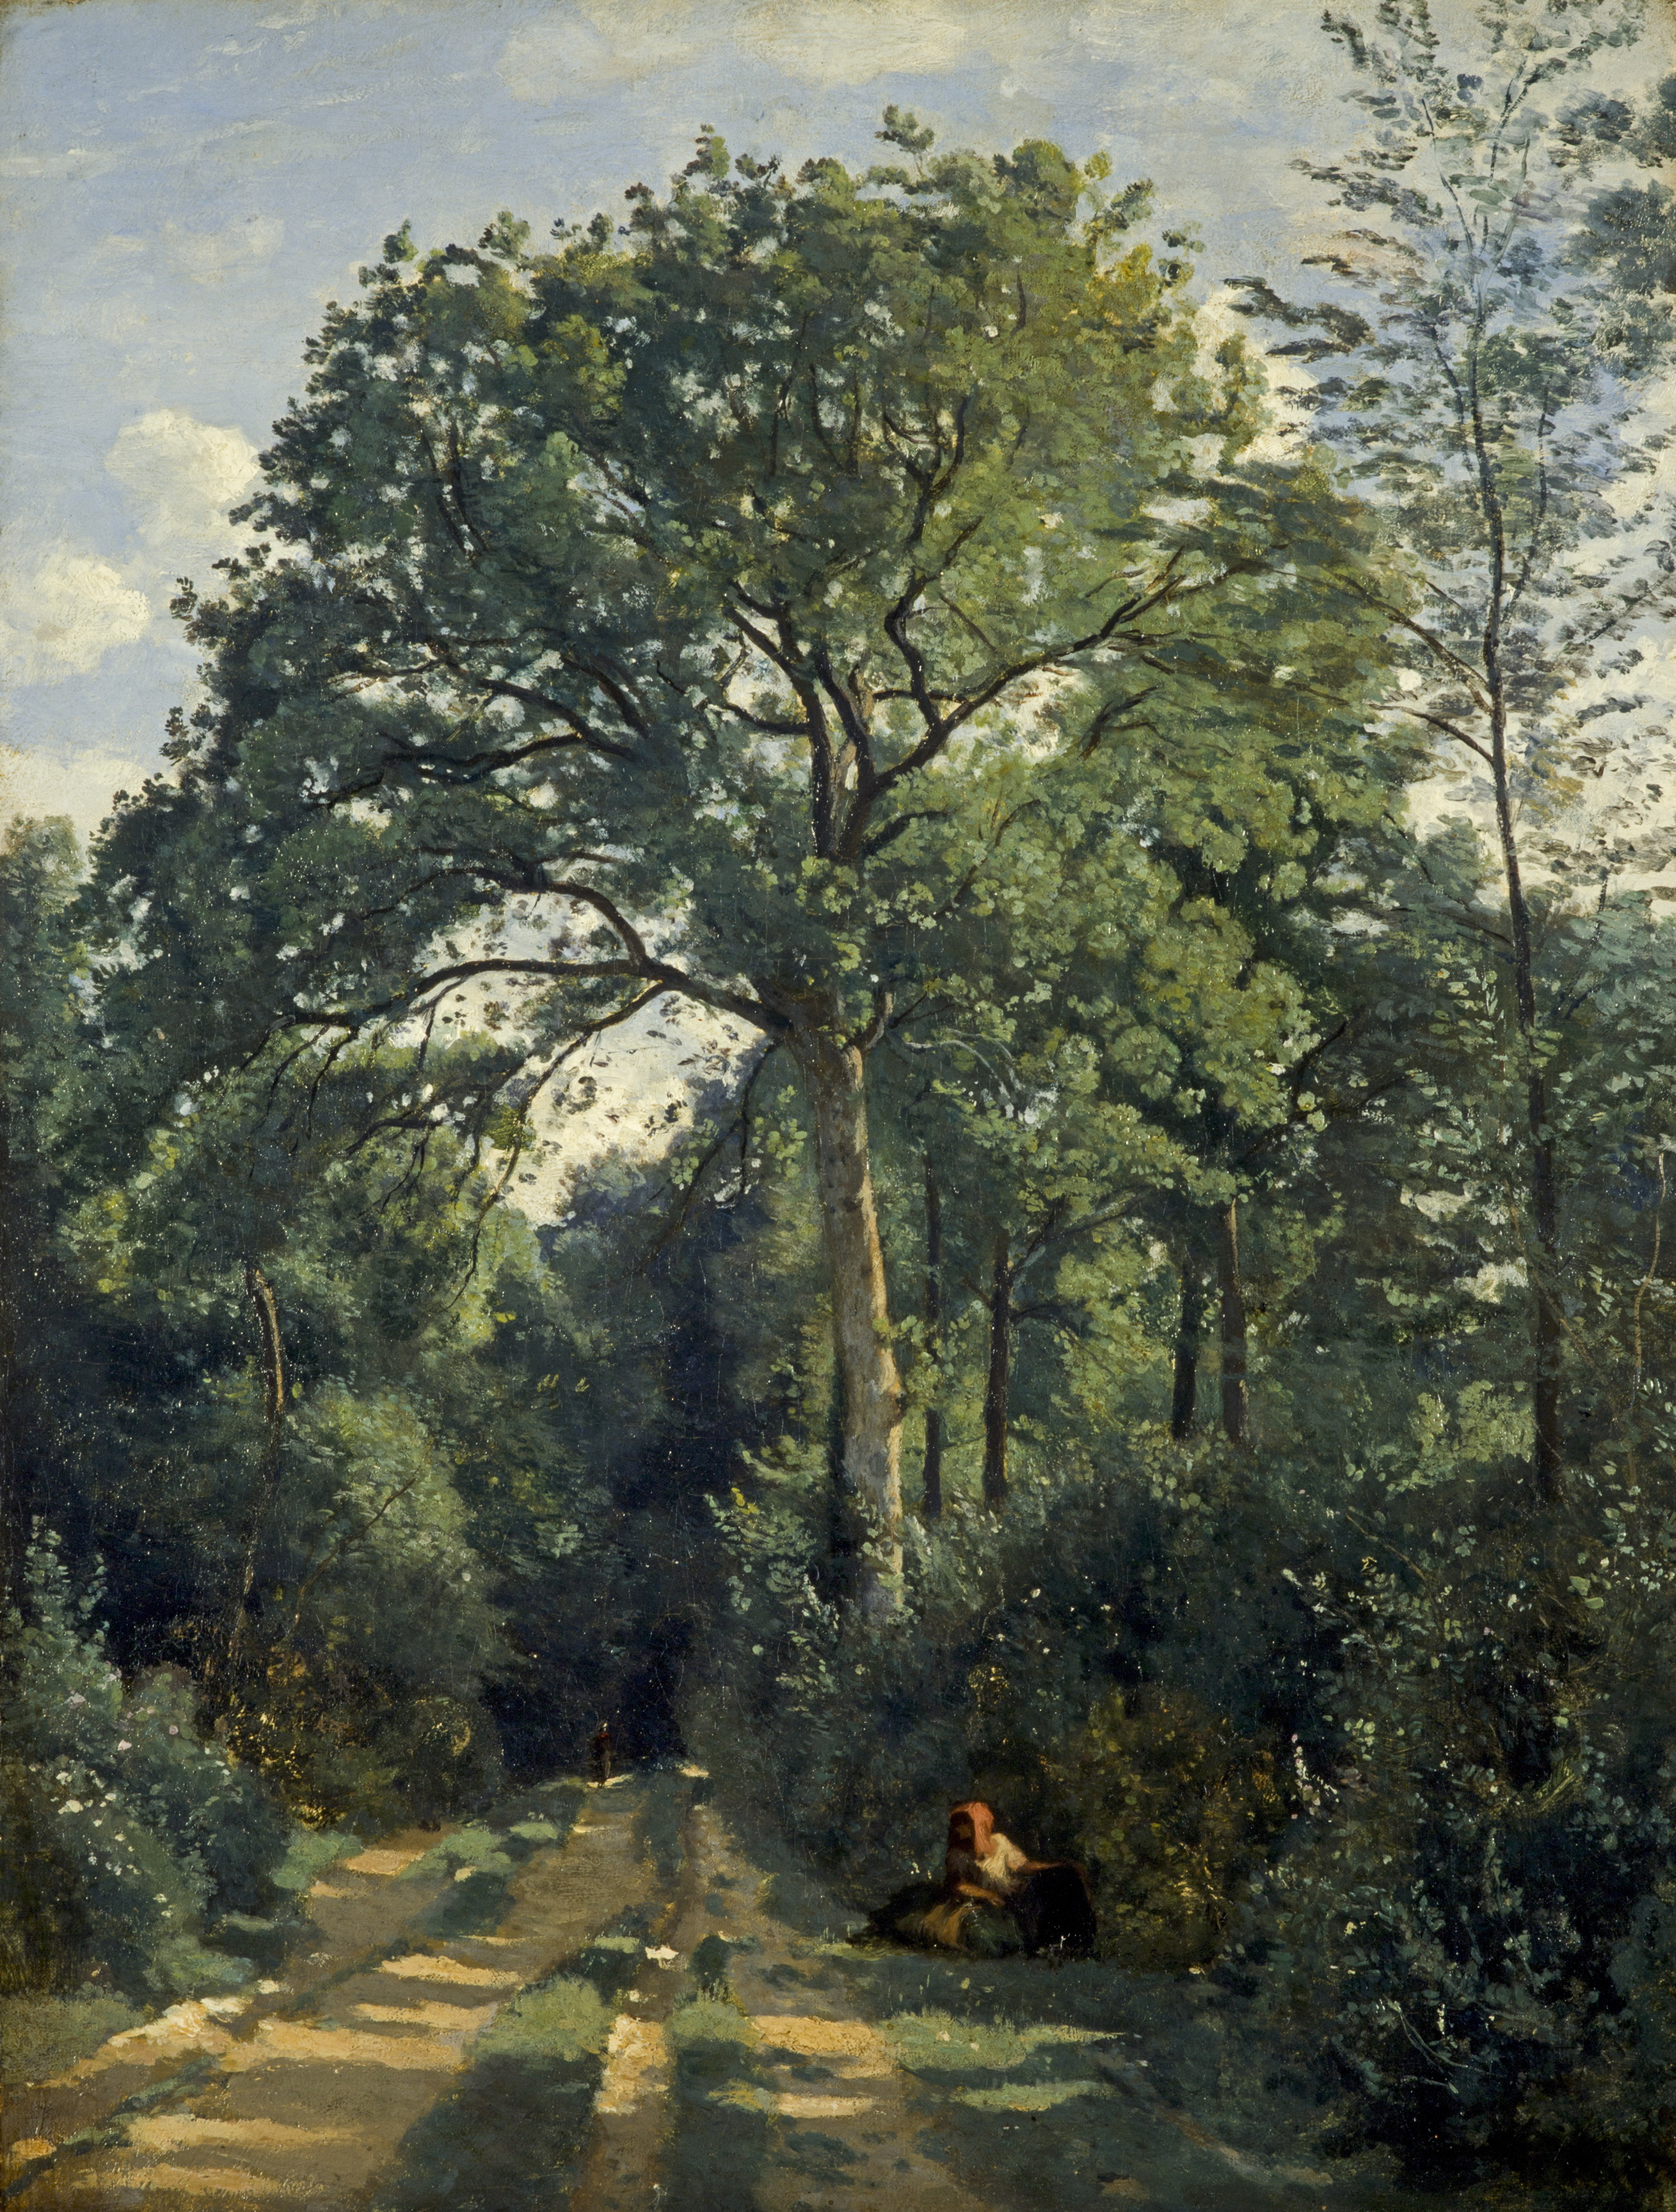 Camille Corot Ville-d'Avray: entrance to the wood c1825 oil on canvas 46 x 35 cm Scottish National Gallery, Edinburgh © Trustees of the National Galleries of Scotland ***This image may only be used in conjunction with editorial coverage of The Greats exhibition, 24 Oct 2015 - 14 Feb 2016, at the Art Gallery of New South Wales. This image may not be cropped or overwritten. Prior approval in writing required for use as a cover. Caption details must accompany reproduction of the image. *** Media contact: Lisa.Catt@ag.nsw.gov.au *** Local Caption *** ***This image may only be used in conjunction with editorial coverage of The Greats exhibition, 24 Oct 2015 - 14 Feb 2016, at the Art Gallery of New South Wales. This image may not be cropped or overwritten. Prior approval in writing required for use as a cover. Caption details must accompany reproduction of the image. *** Media contact: Lisa.Catt@ag.nsw.gov.au